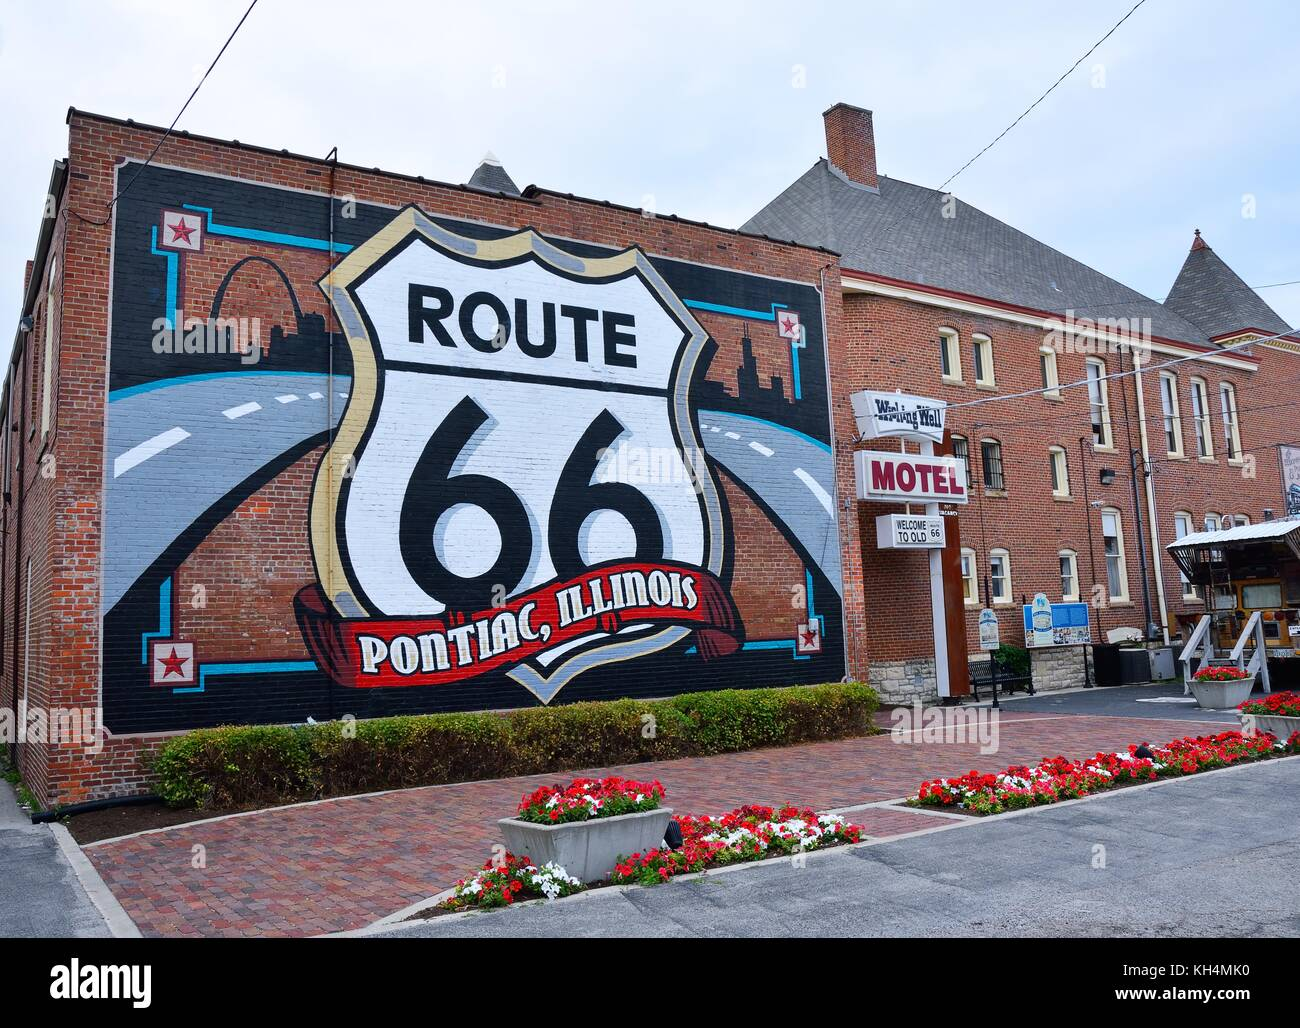 Route 66 mural city stock photos route 66 mural city for Route 66 mural